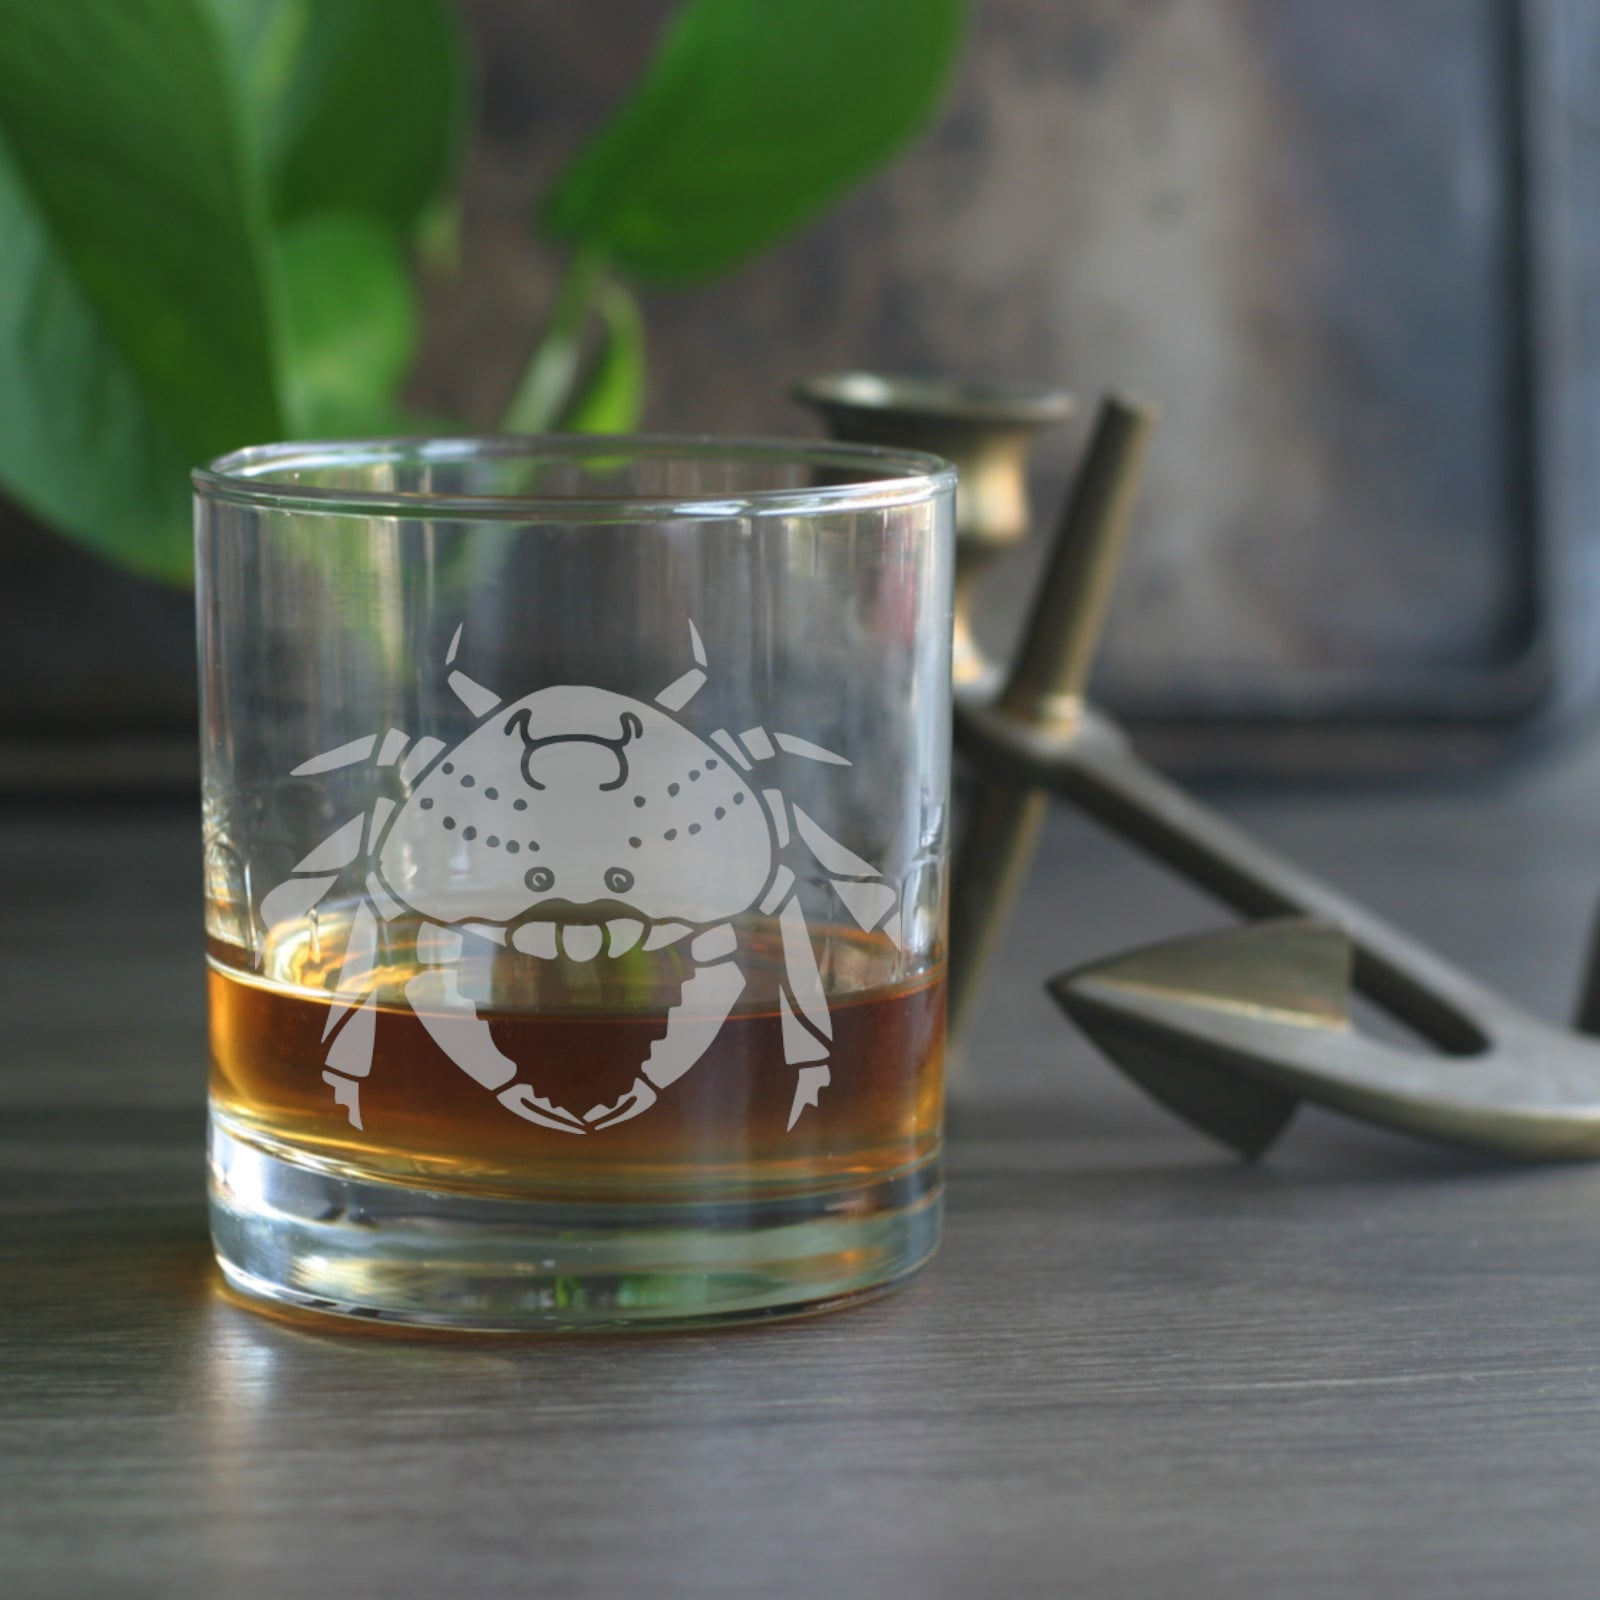 Dungeness Crab lowball glass by Bread and Badger